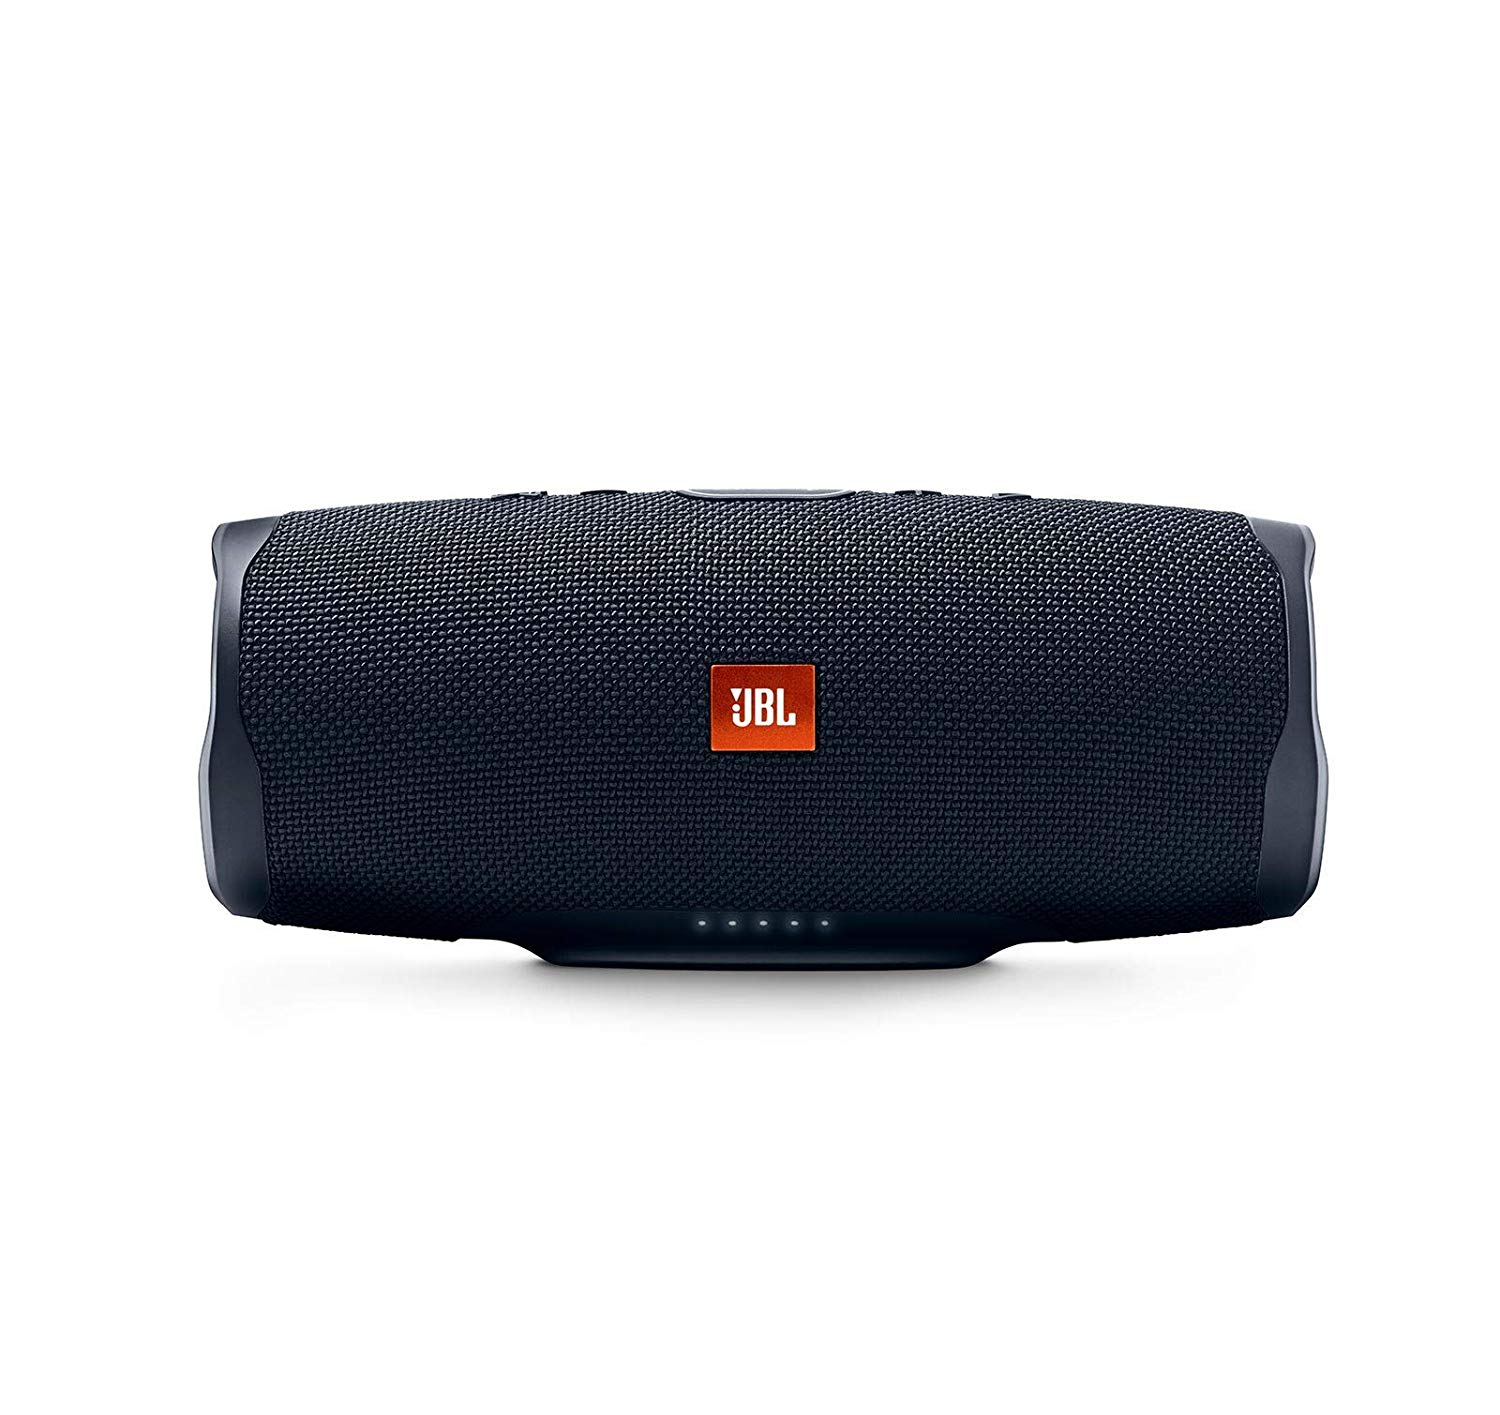 JBL Charge 4 Bluetooth Speaker Review 2019 - Your Tech Space com